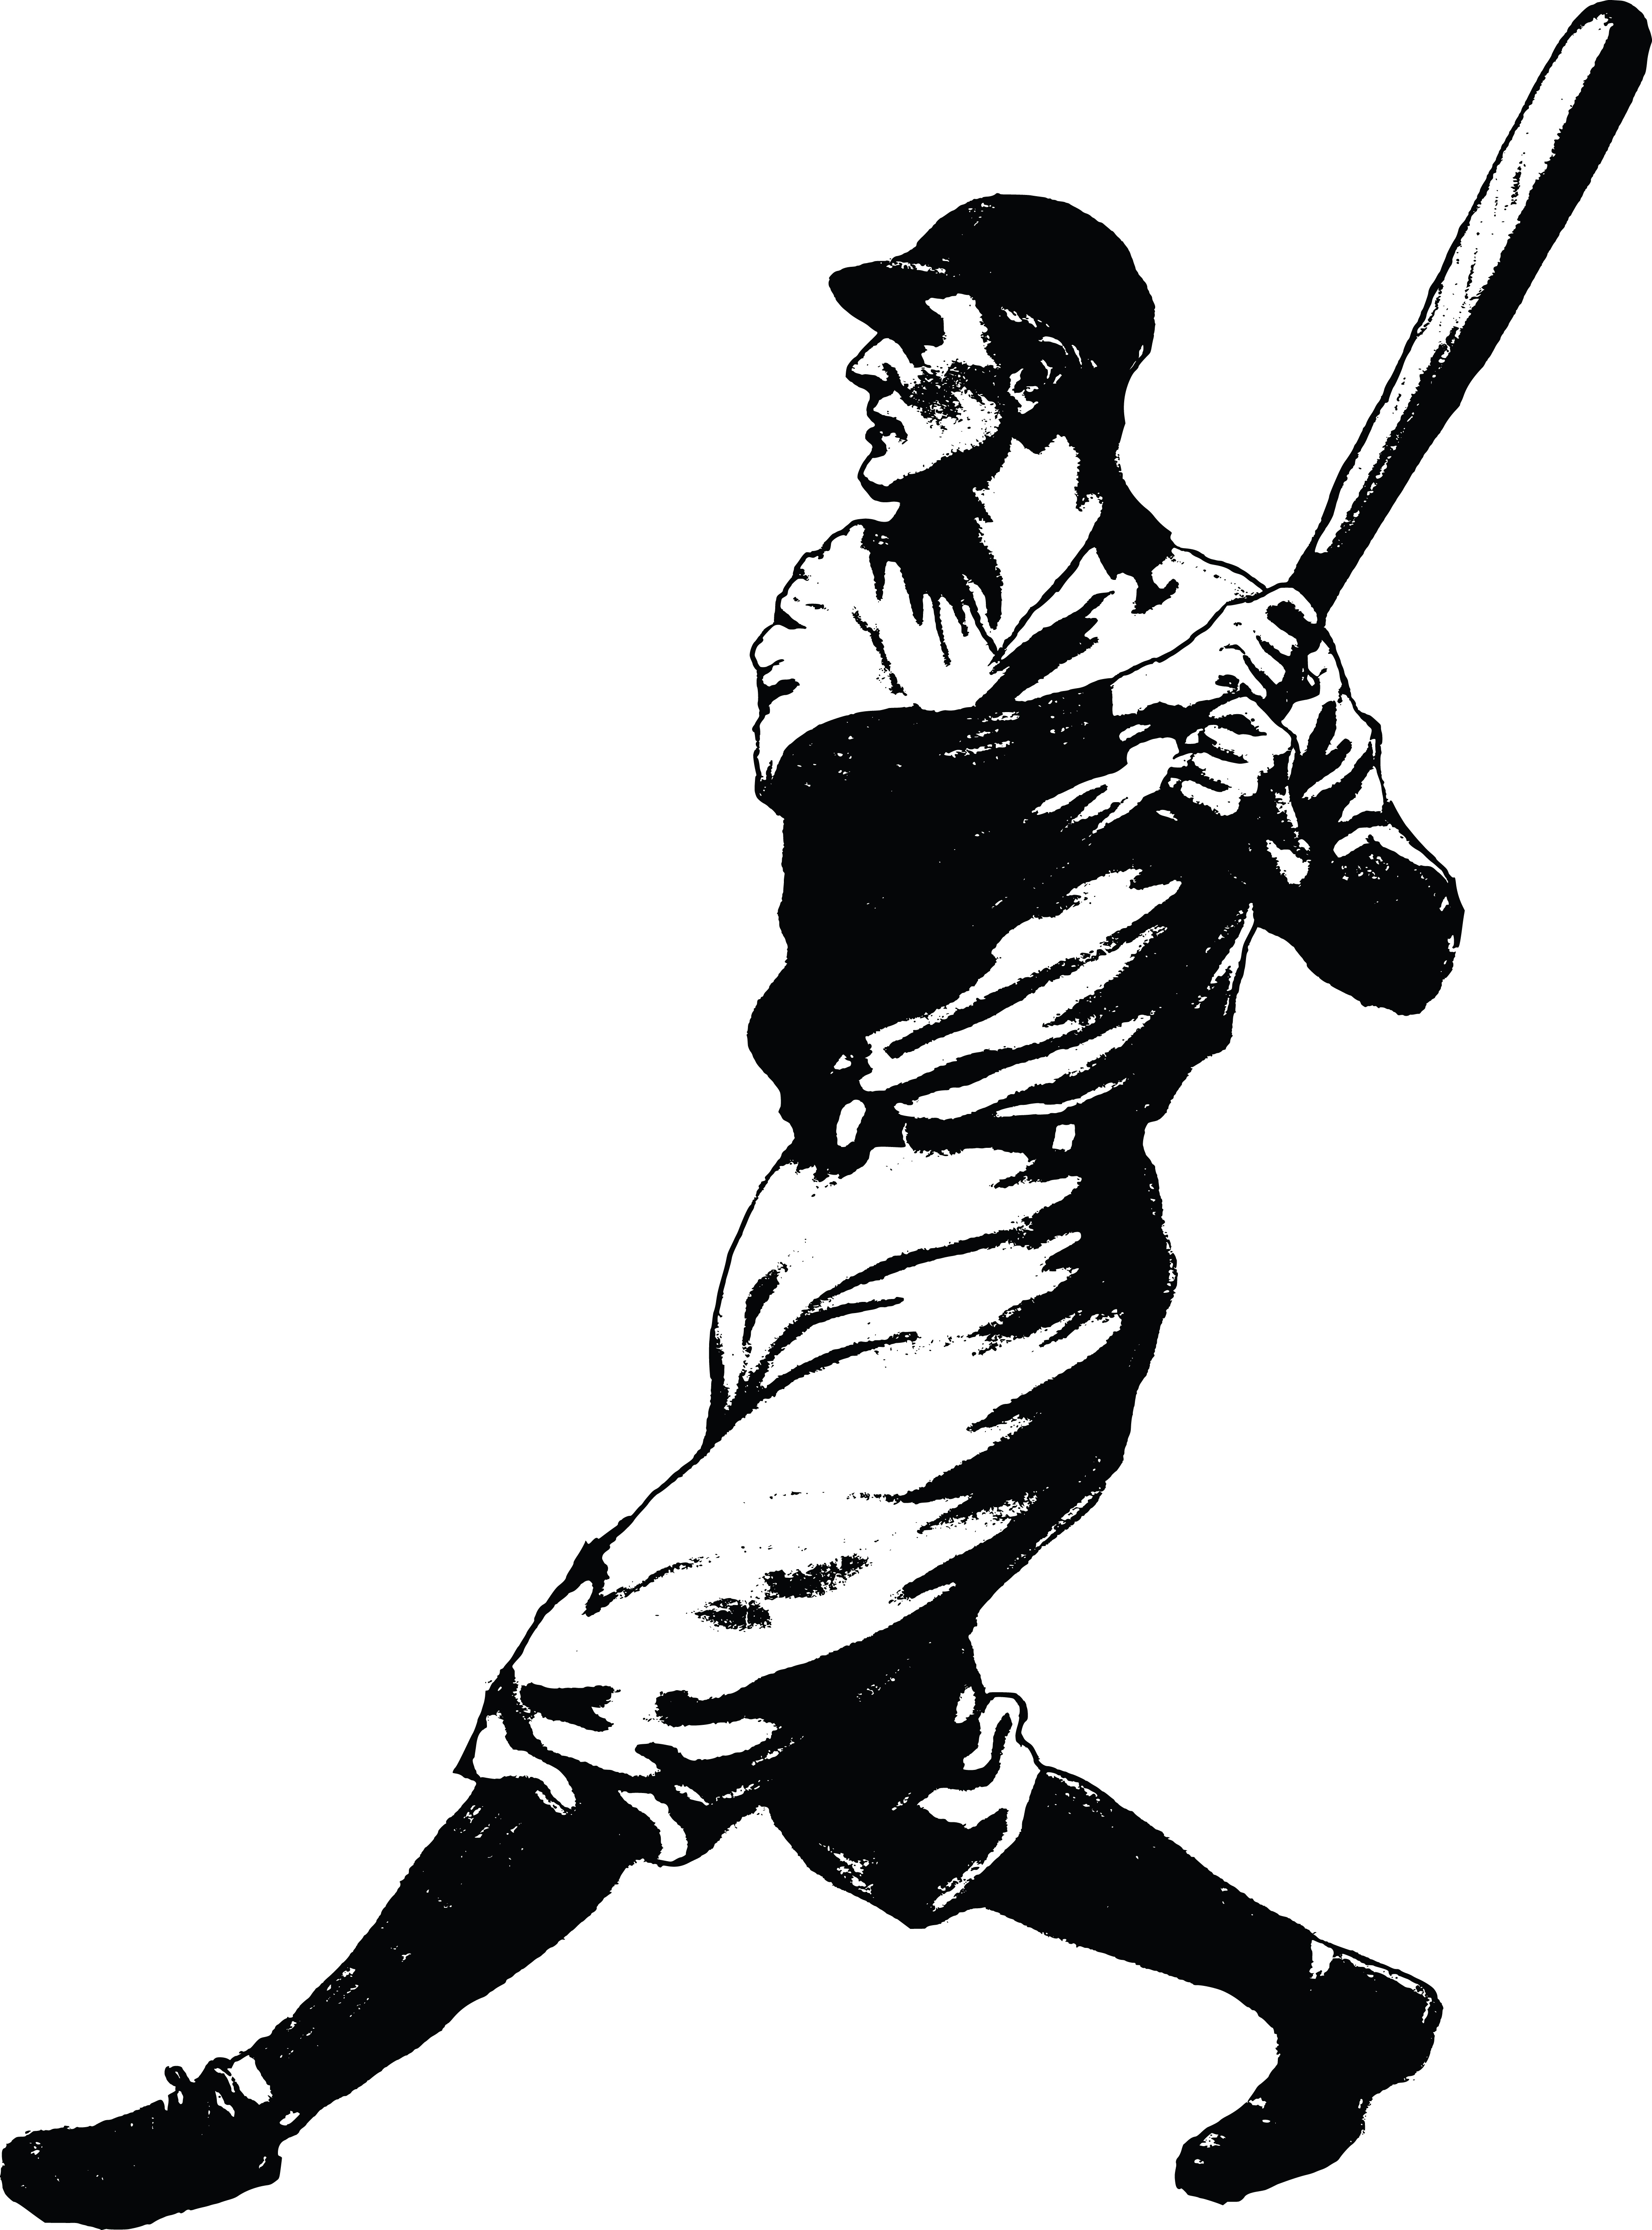 Free Clipart Of a baseball player batting.